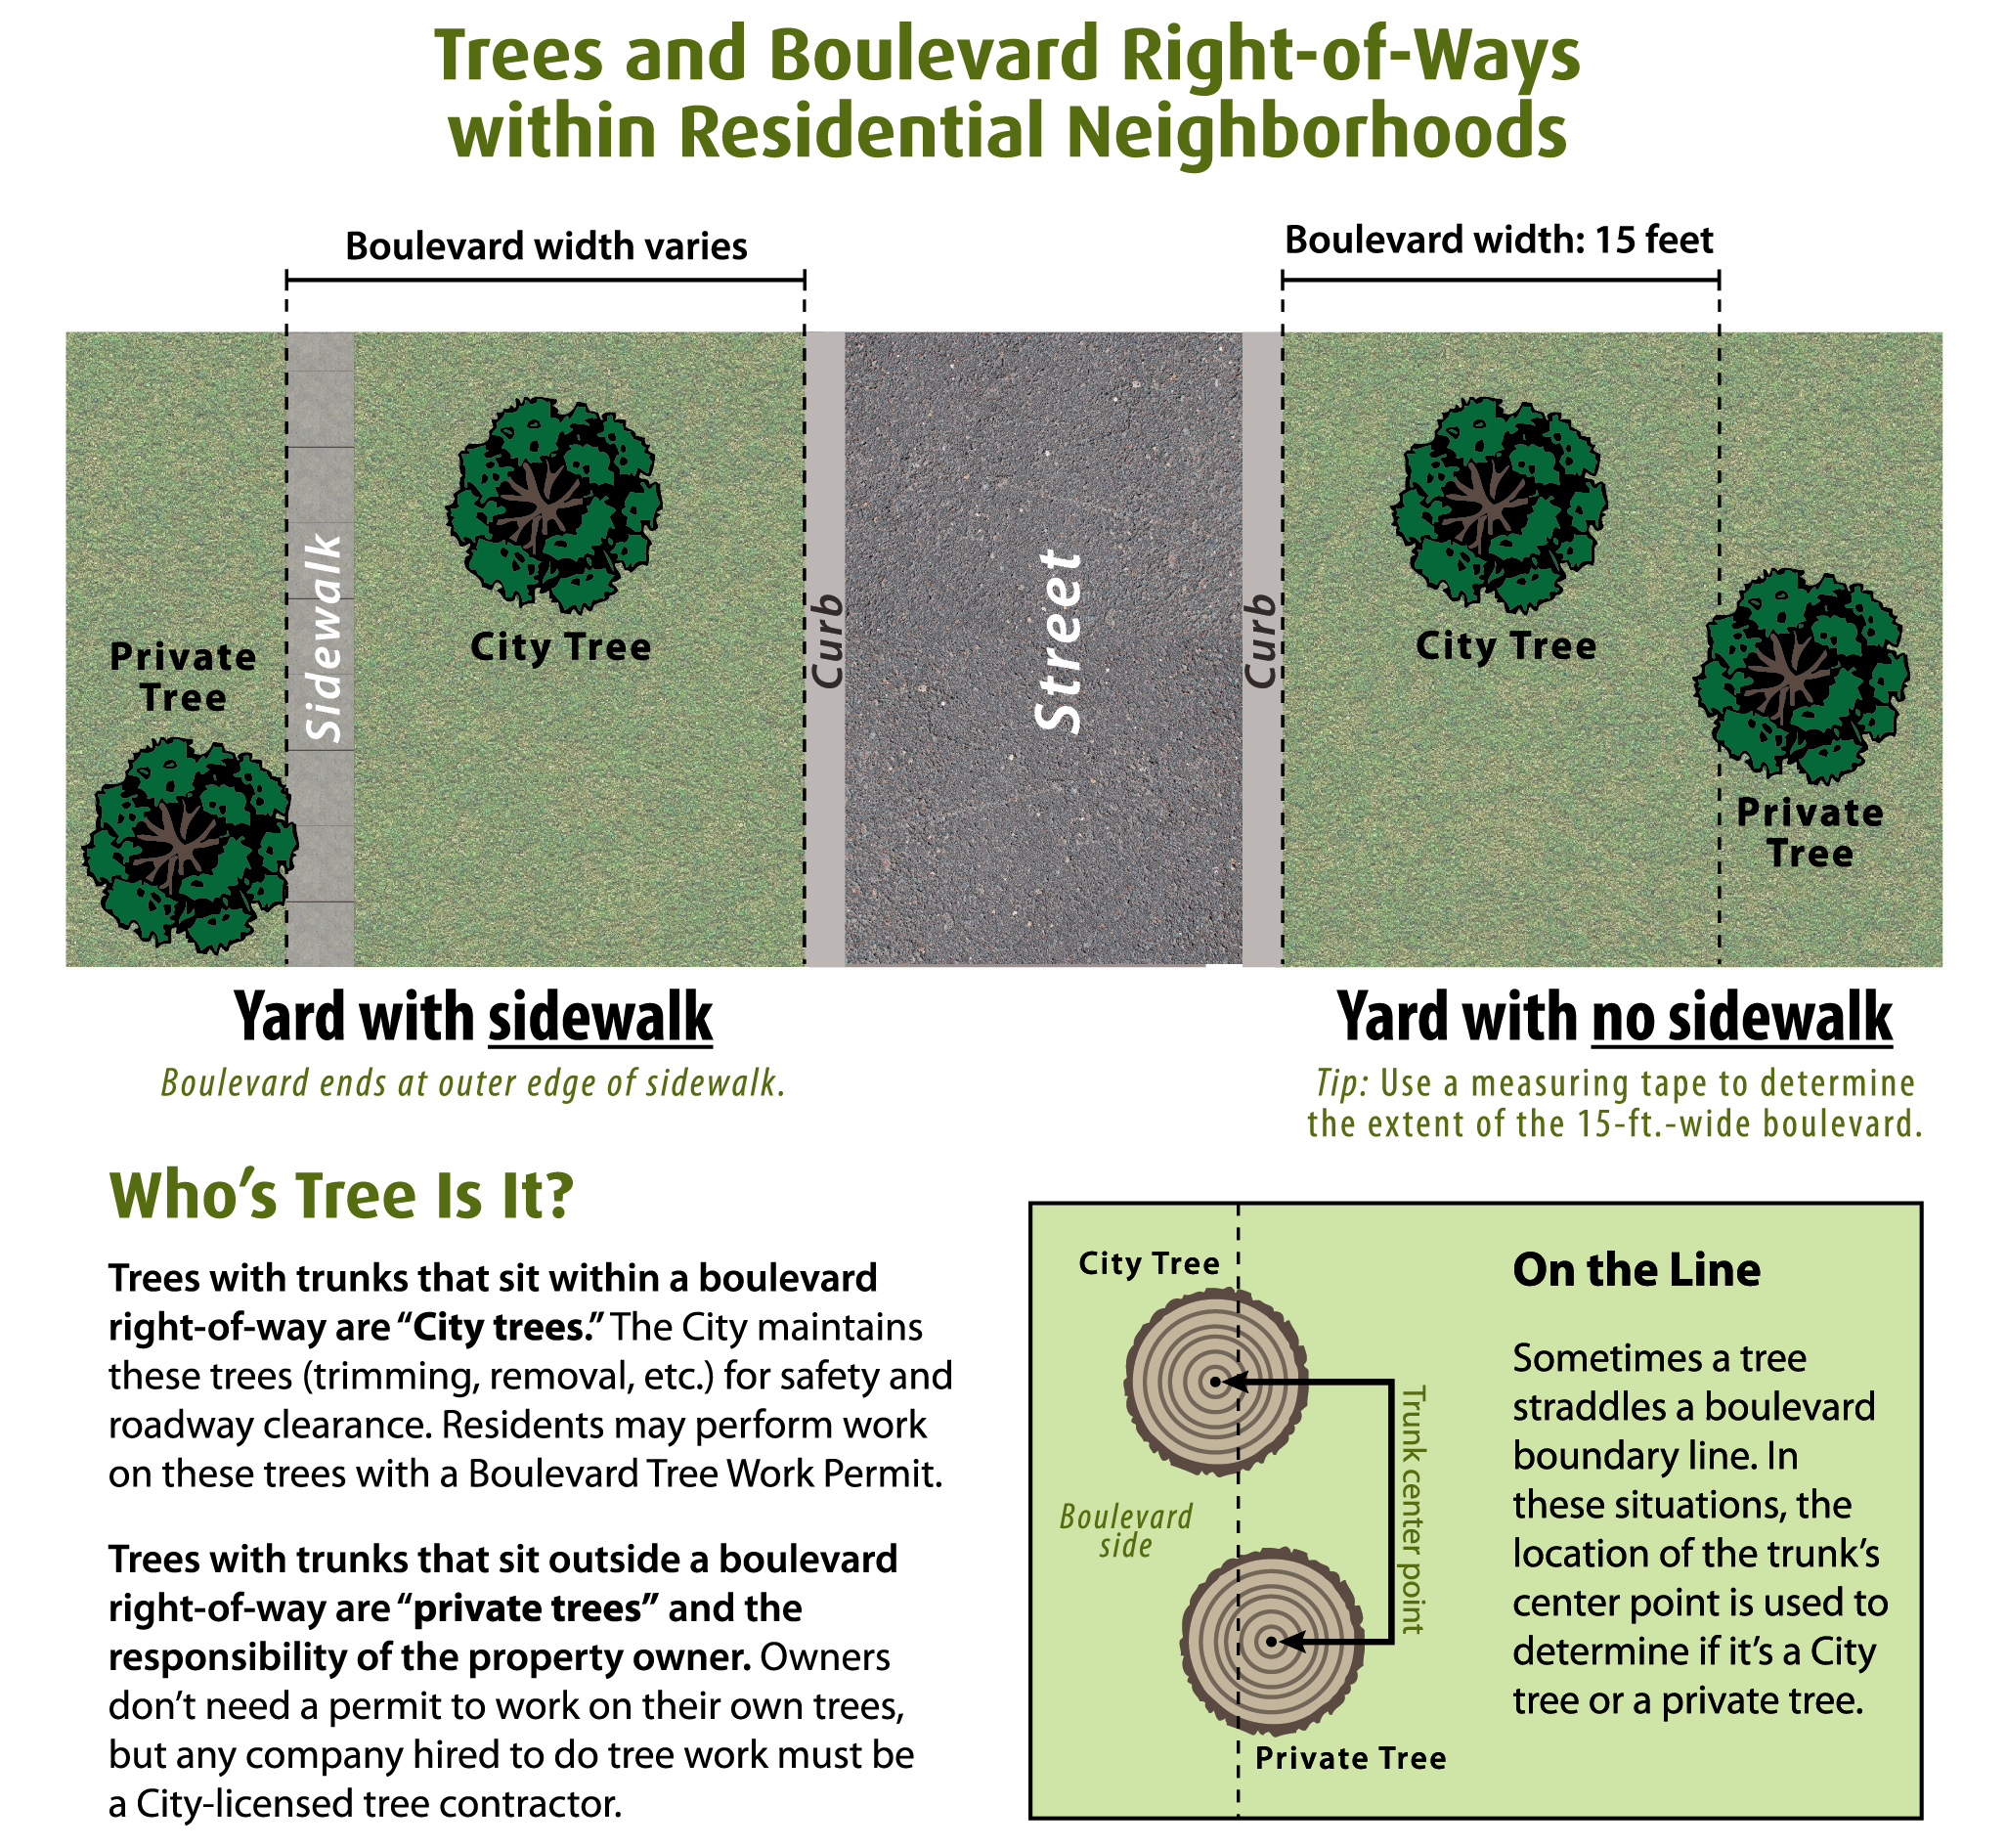 Trees and boulevard right-of-ways within residential neighborhoods